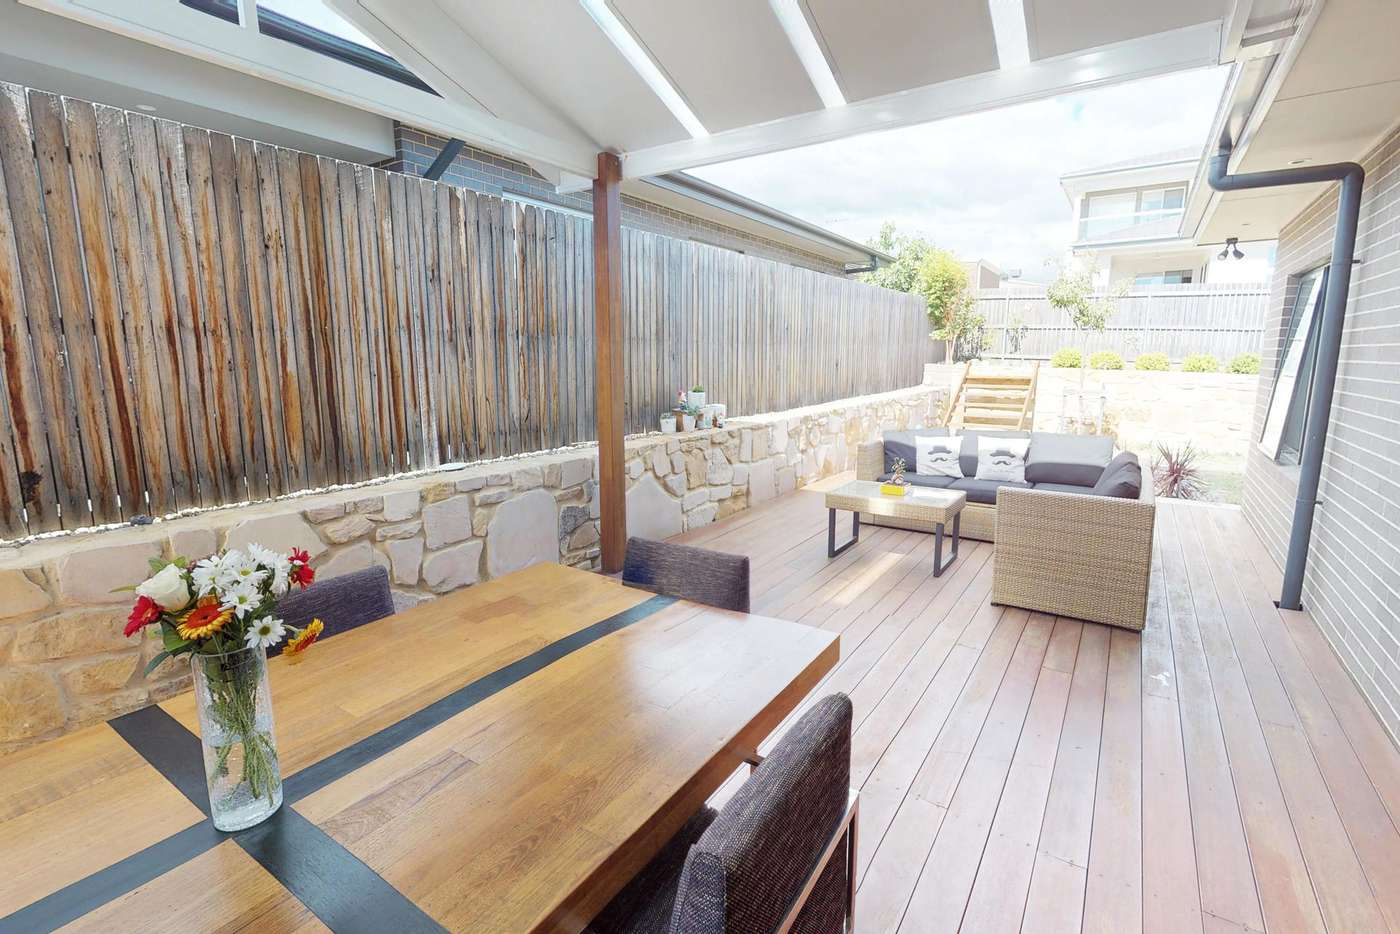 Seventh view of Homely house listing, 58 Ivory Street, Crace ACT 2911